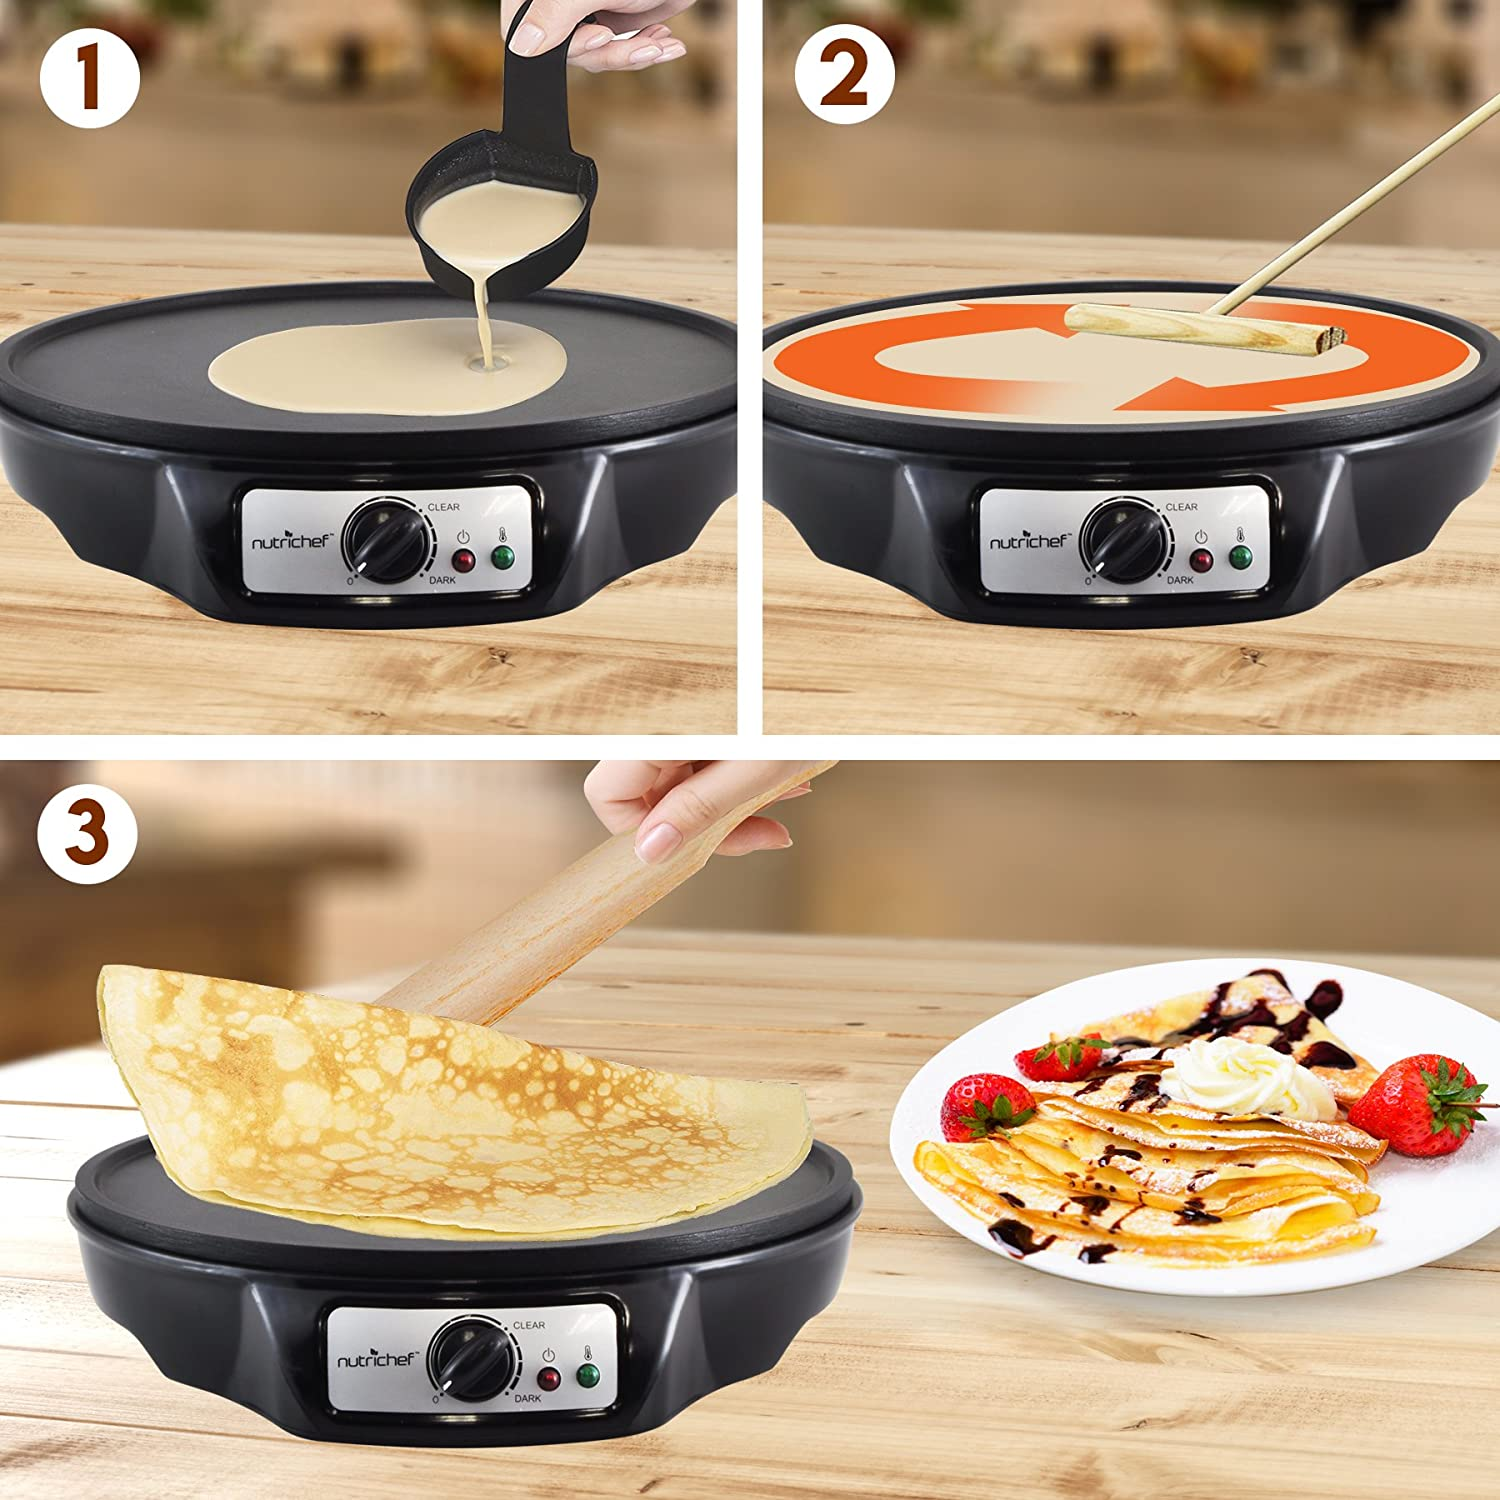 Aluminum Griddle Hot Plate Cooktop with Adjustable Temperature Control and LED Indicator Light Nonstick 12-Inch Electric Crepe Maker NutriChef Includes Wooden Spatula and Batter Spreader